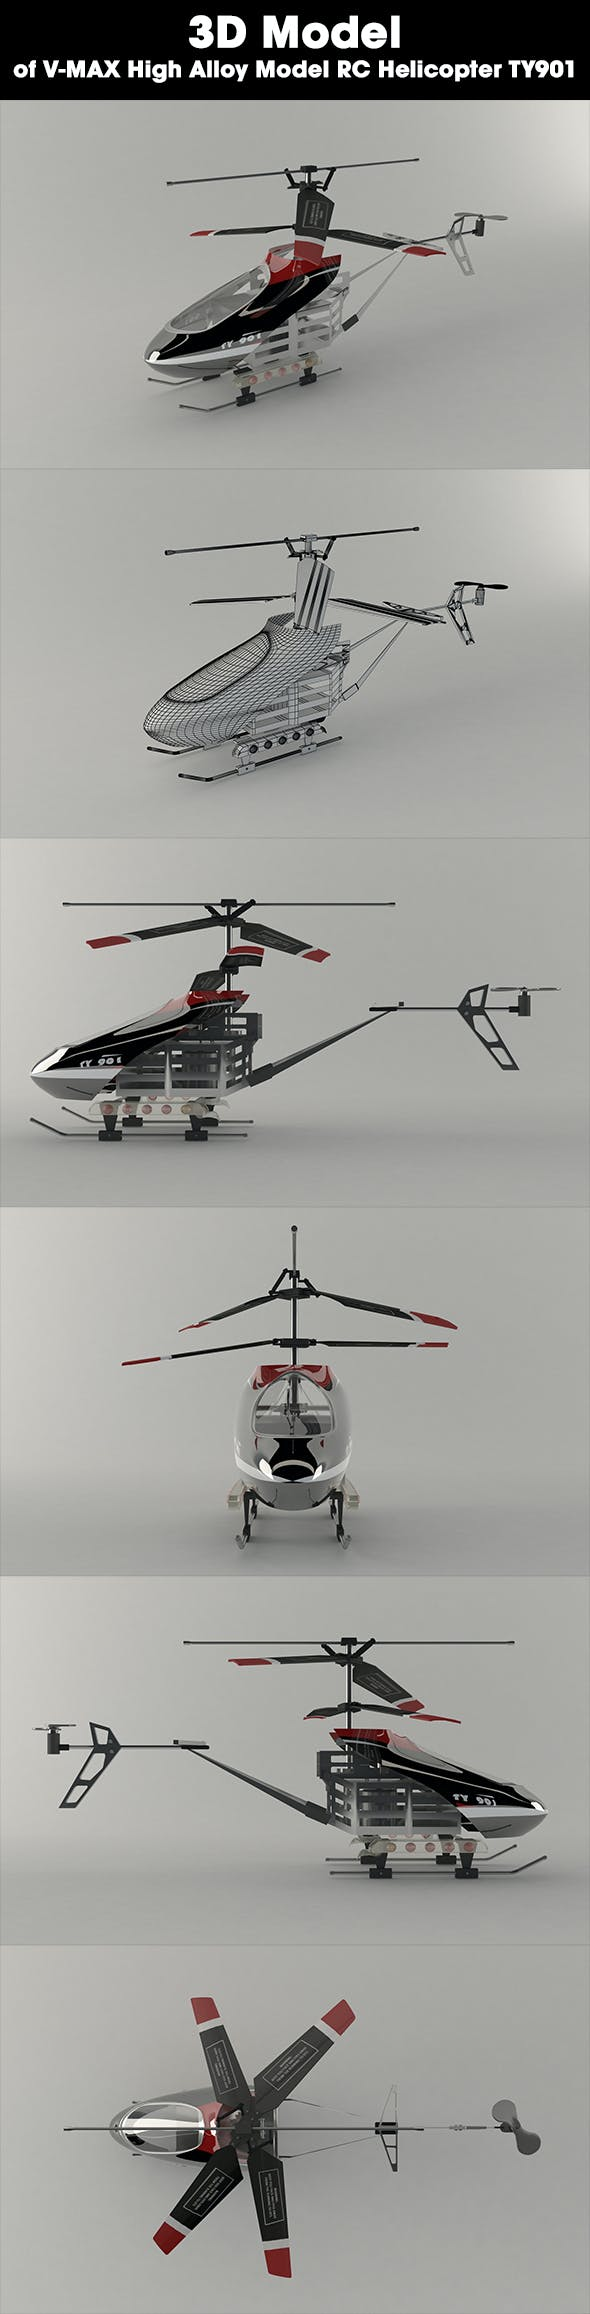 Helicopter - V-MAX High Alloy Model RC Helicopter TY901 - 3DOcean Item for Sale